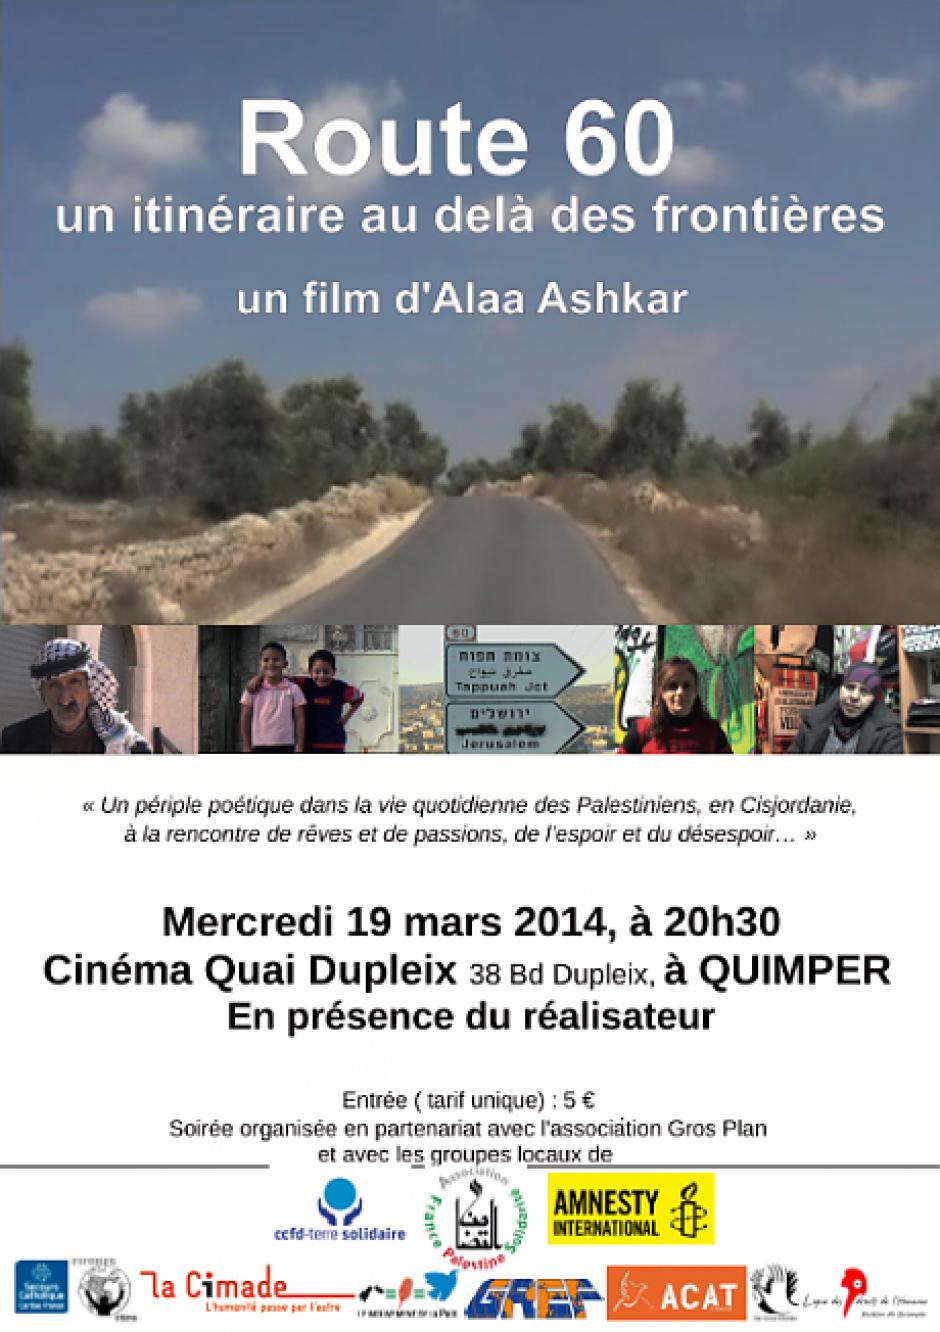 Mercredi 19 mars à 20h30, à Quimper, projection du film